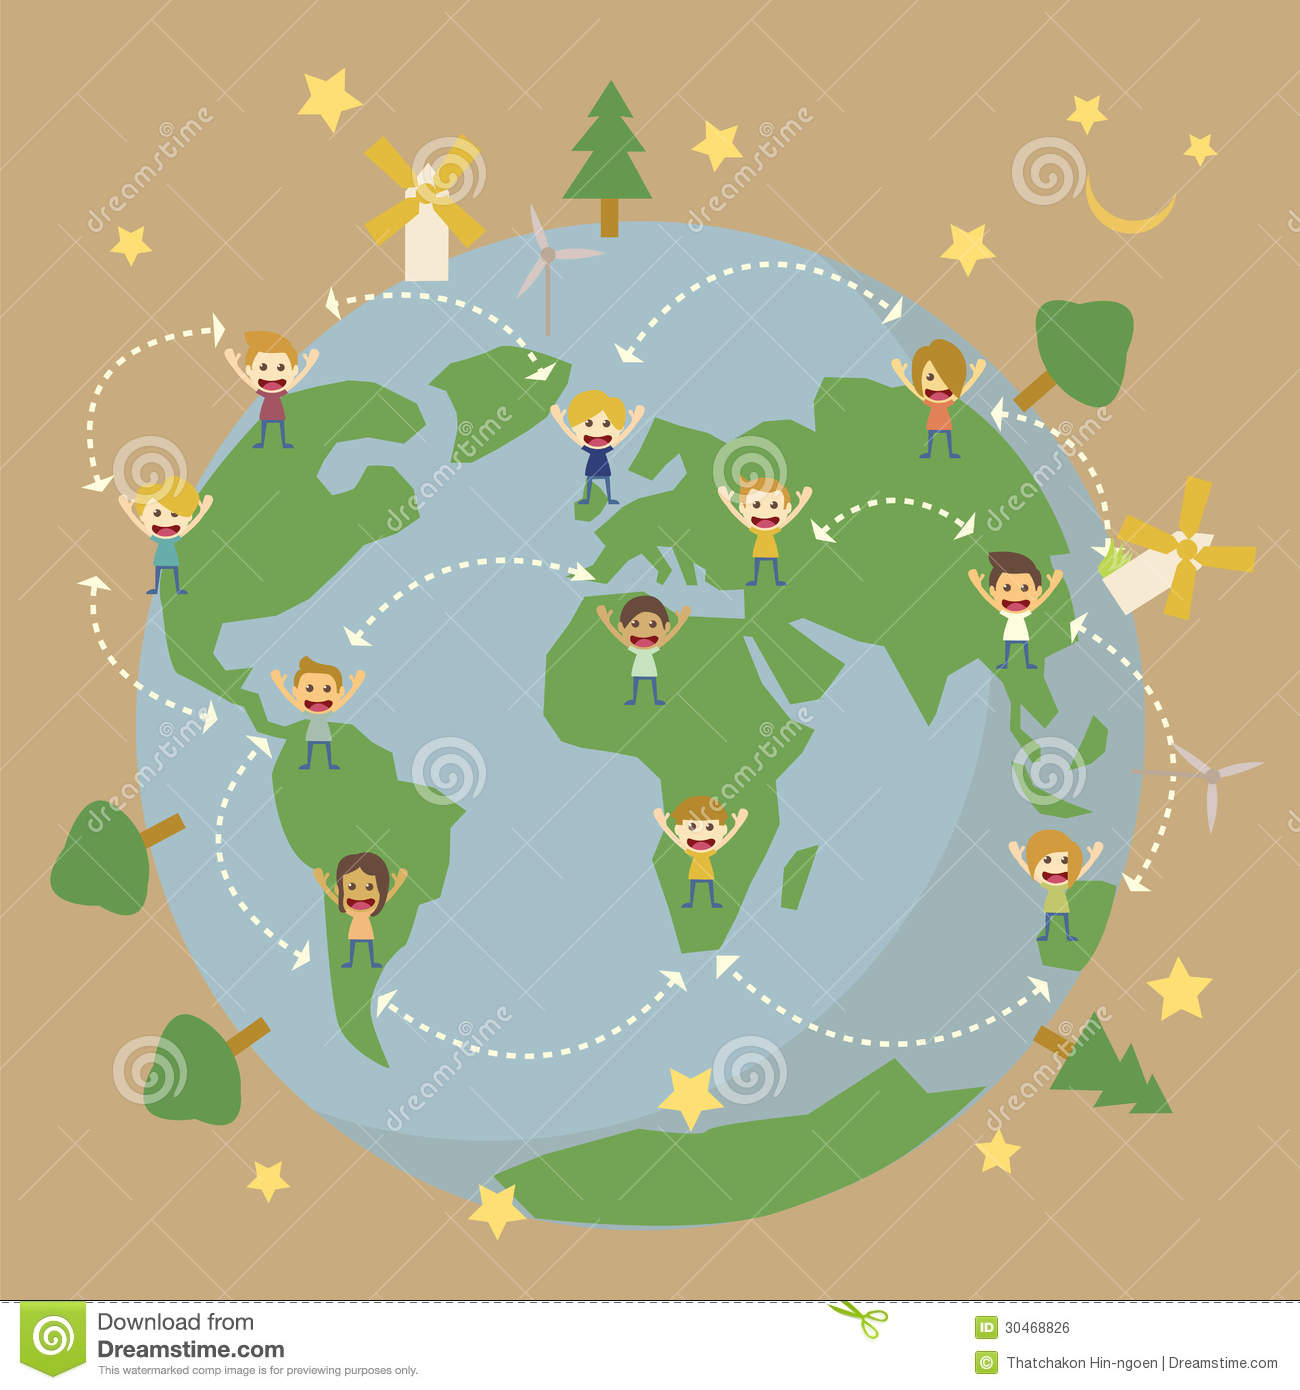 Save the planet earth stock vector. Illustration of - 30468826 Earth Map For Kids on